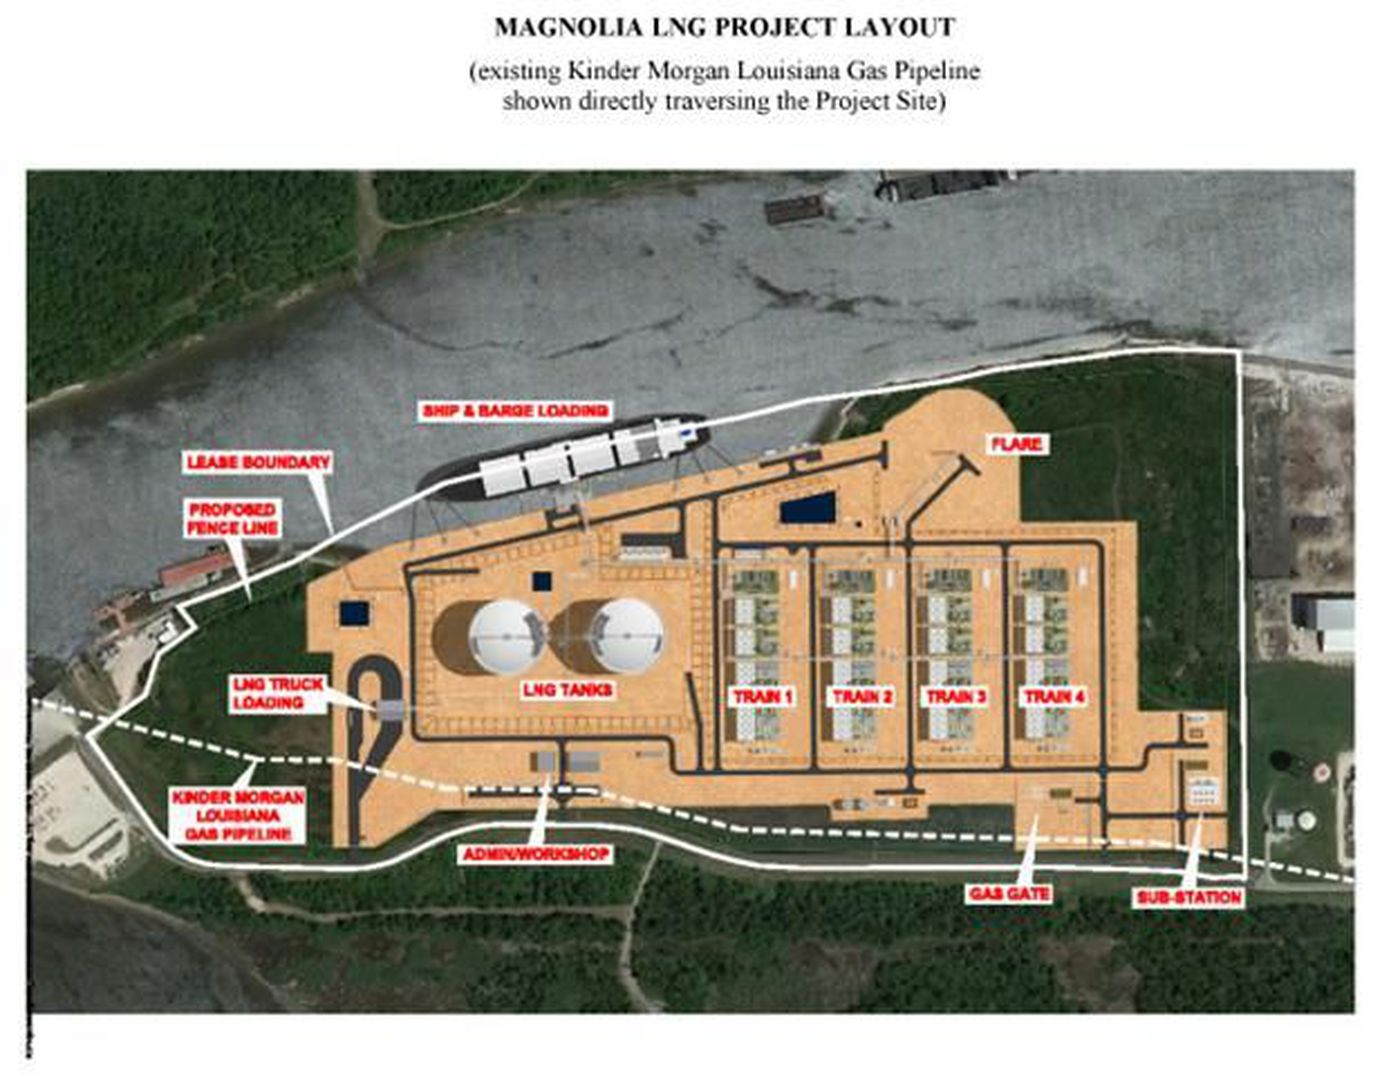 Magnolia LNG signs agreement with Kinder Morgan Louisiana Pipeline